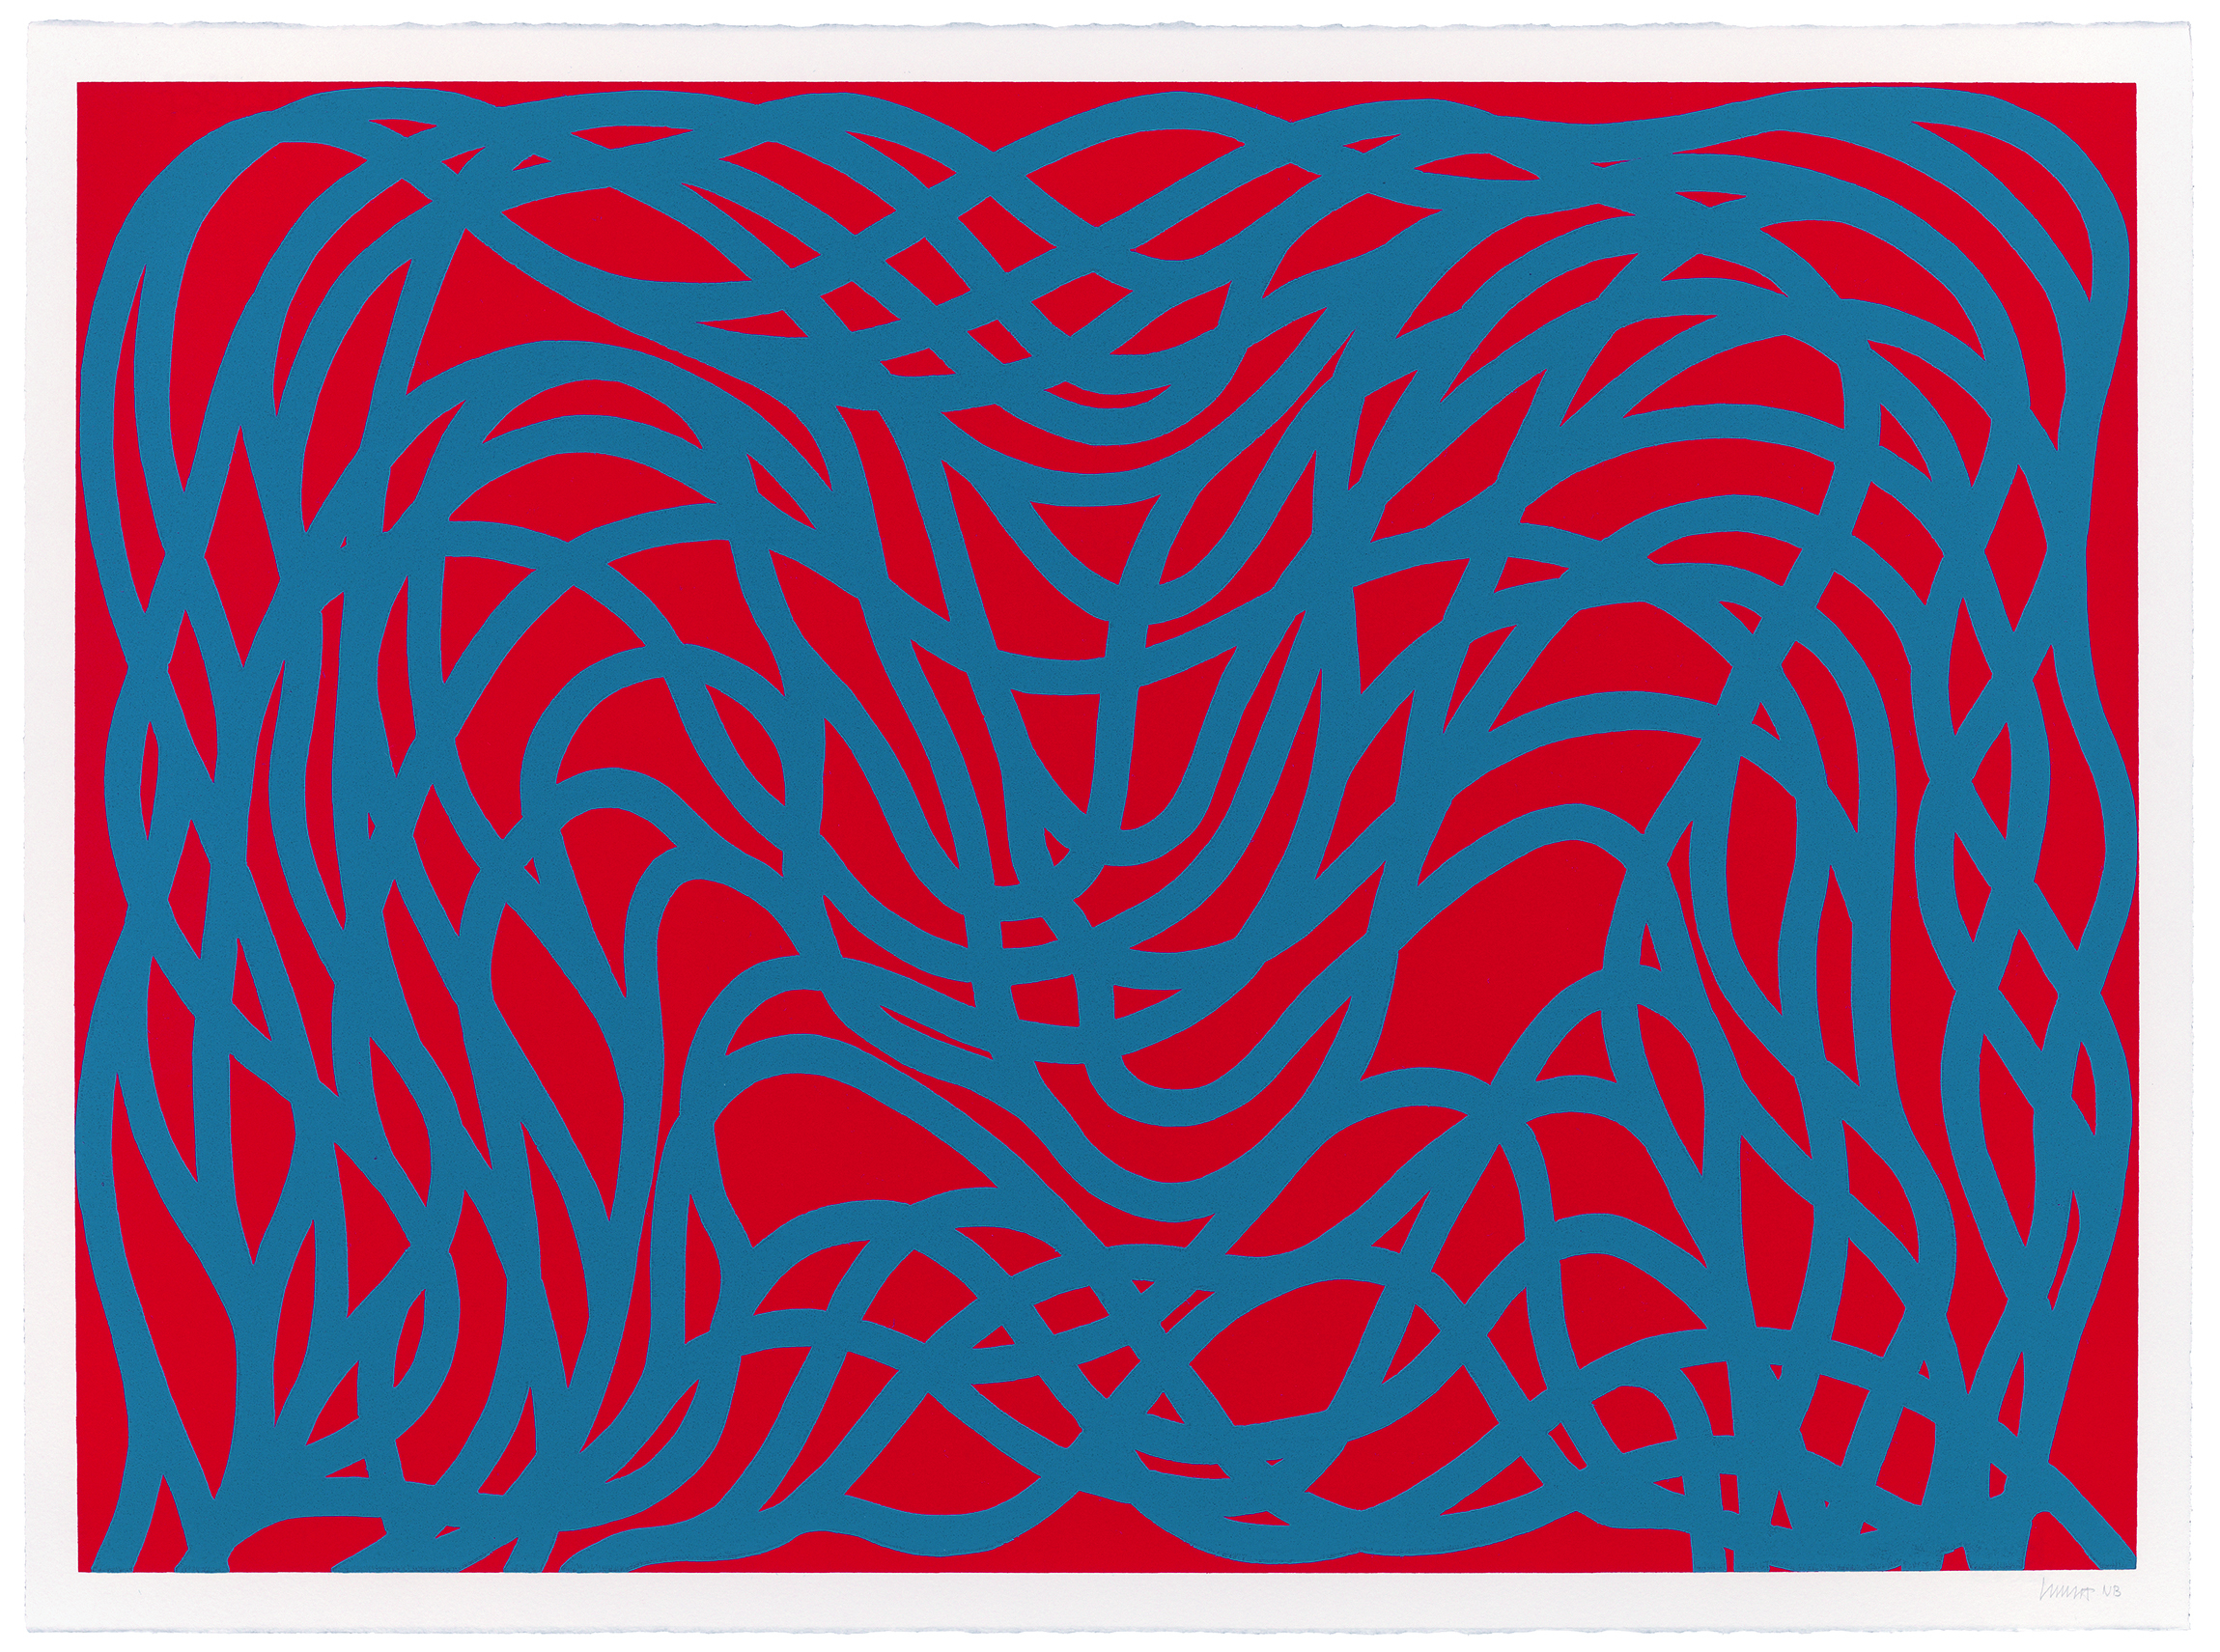 Sol LeWitt, <i> Loopy Doopy, Blue/Red</i>, 2000, Color woodcut, 20 5/8 x 28 5/8 in., New Britain Museum of American Art